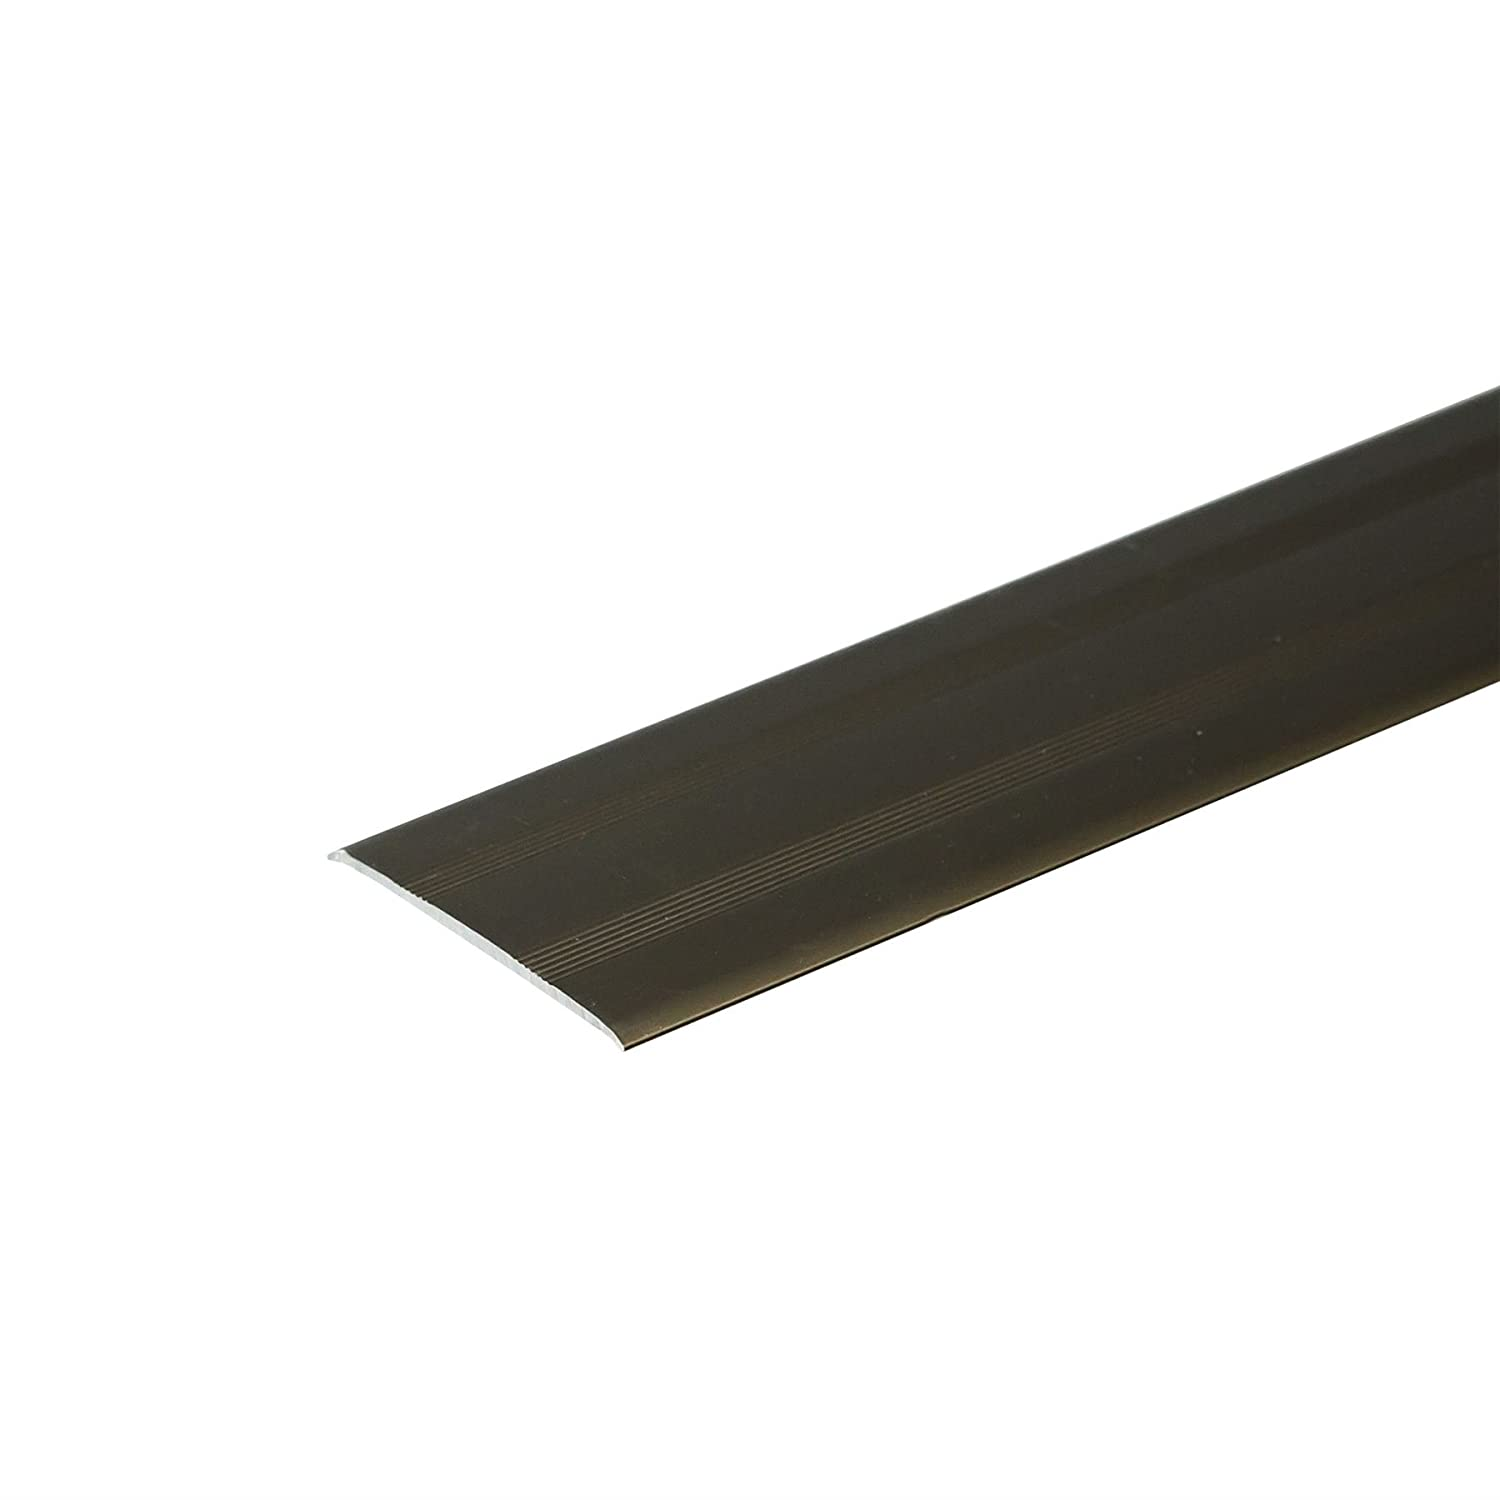 SELF-ADHESIVE ANODISED ALUMINIUM DOOR FLOOR BAR EDGE TRIM THRESHOLD PROFILE  930mm x 35mm A08 SILVER IANPAV